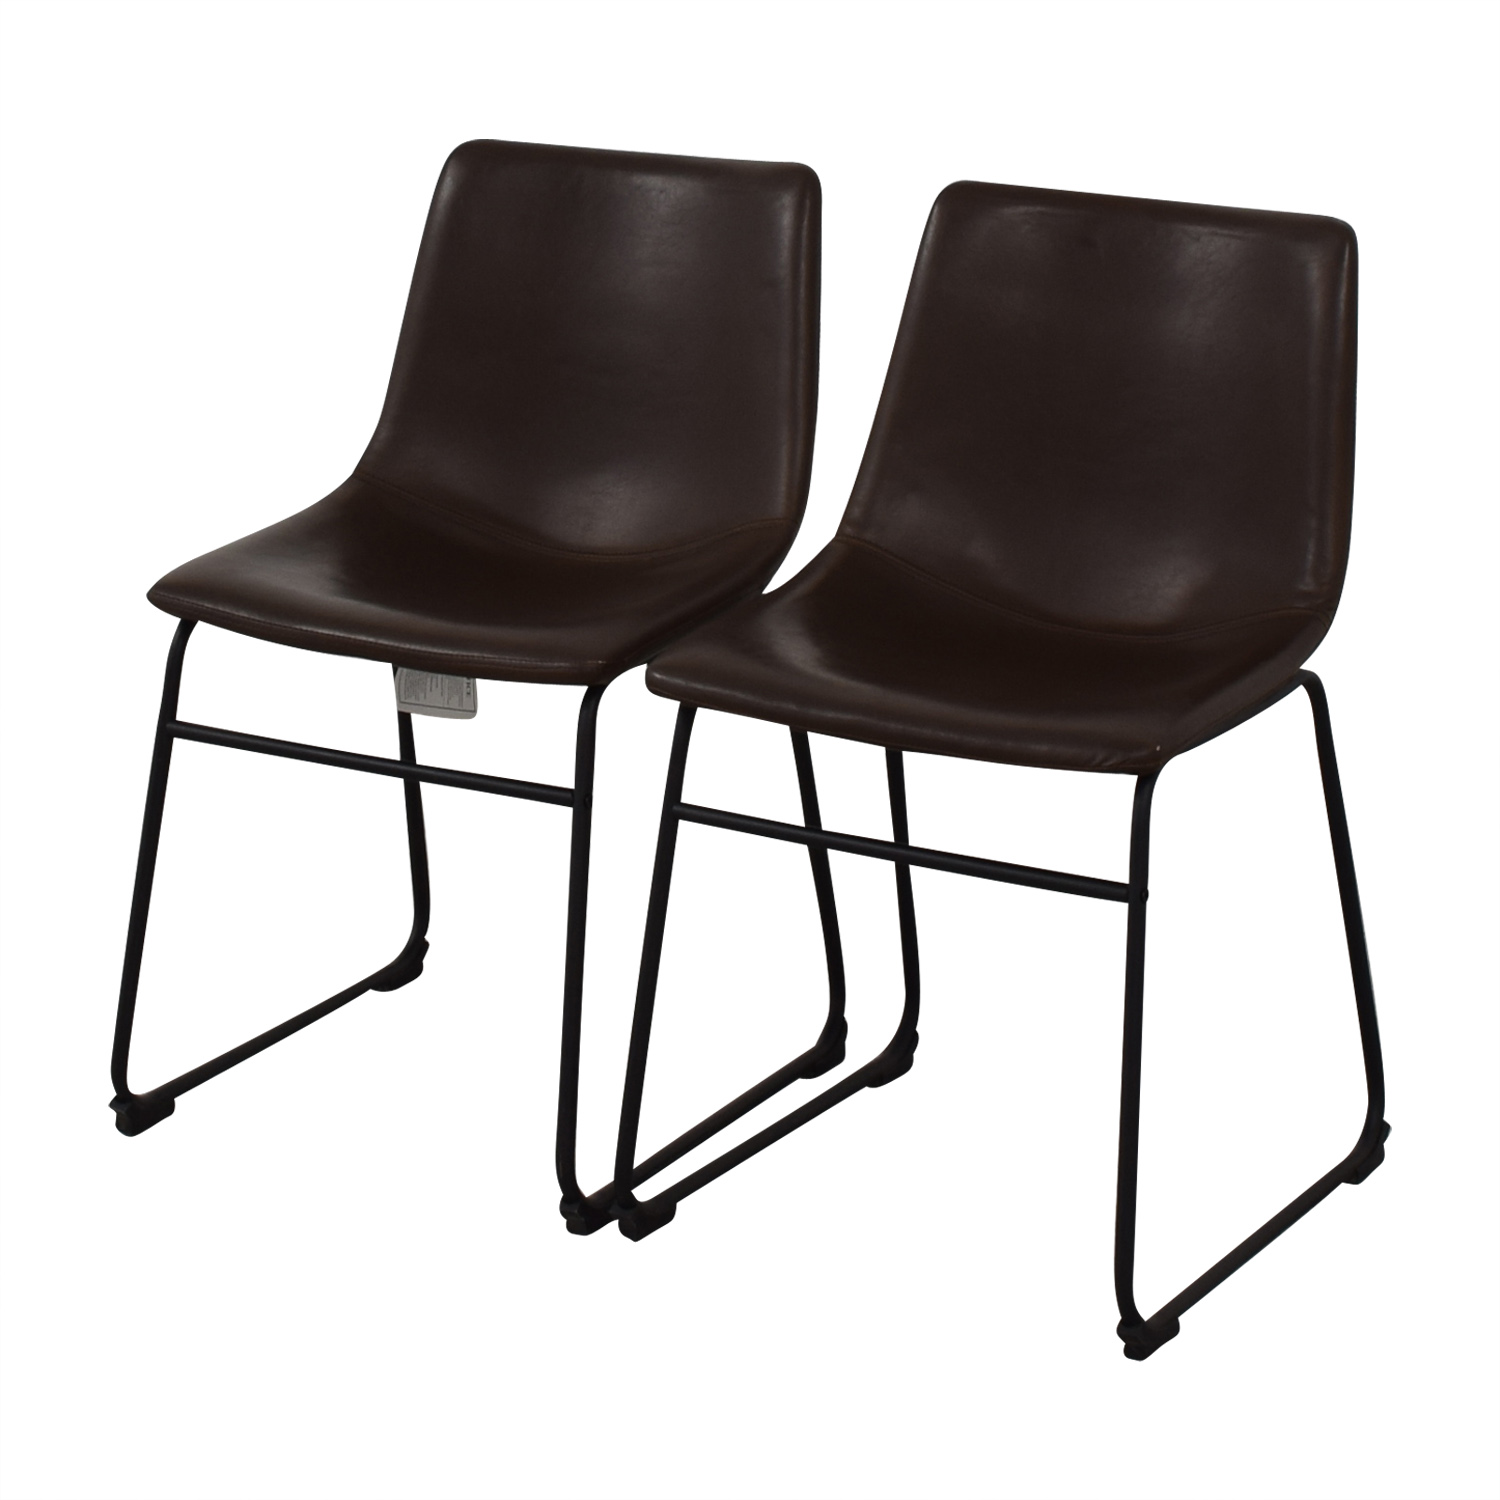 Walker Edison Walker Edison Industrial Faux Leather Dining Chairs nyc